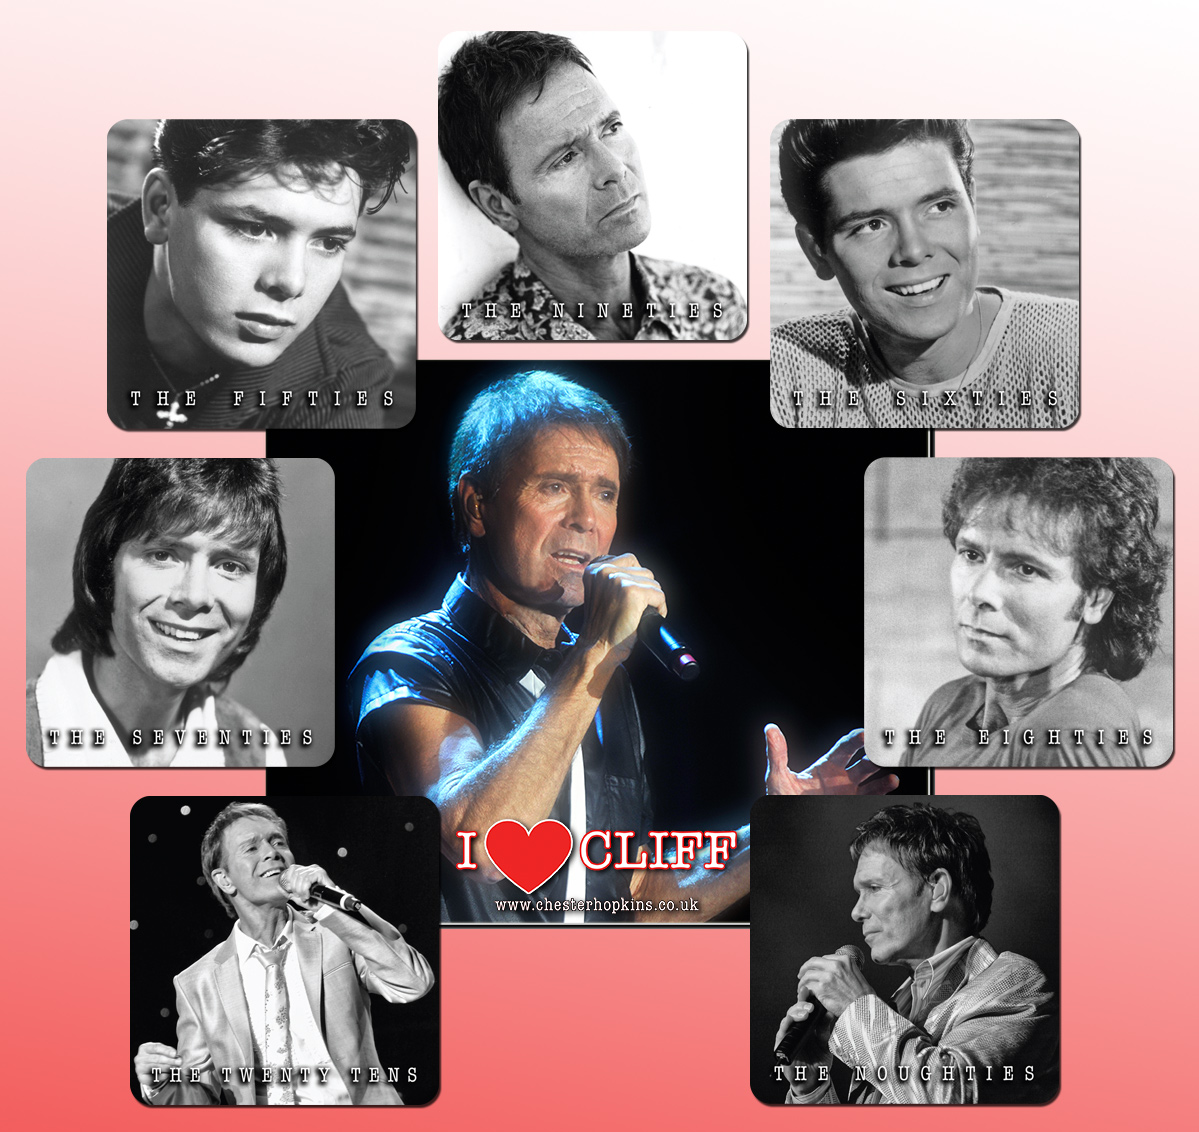 Cliff Richard Mouse Mat & 7 Decades Drink Coasters